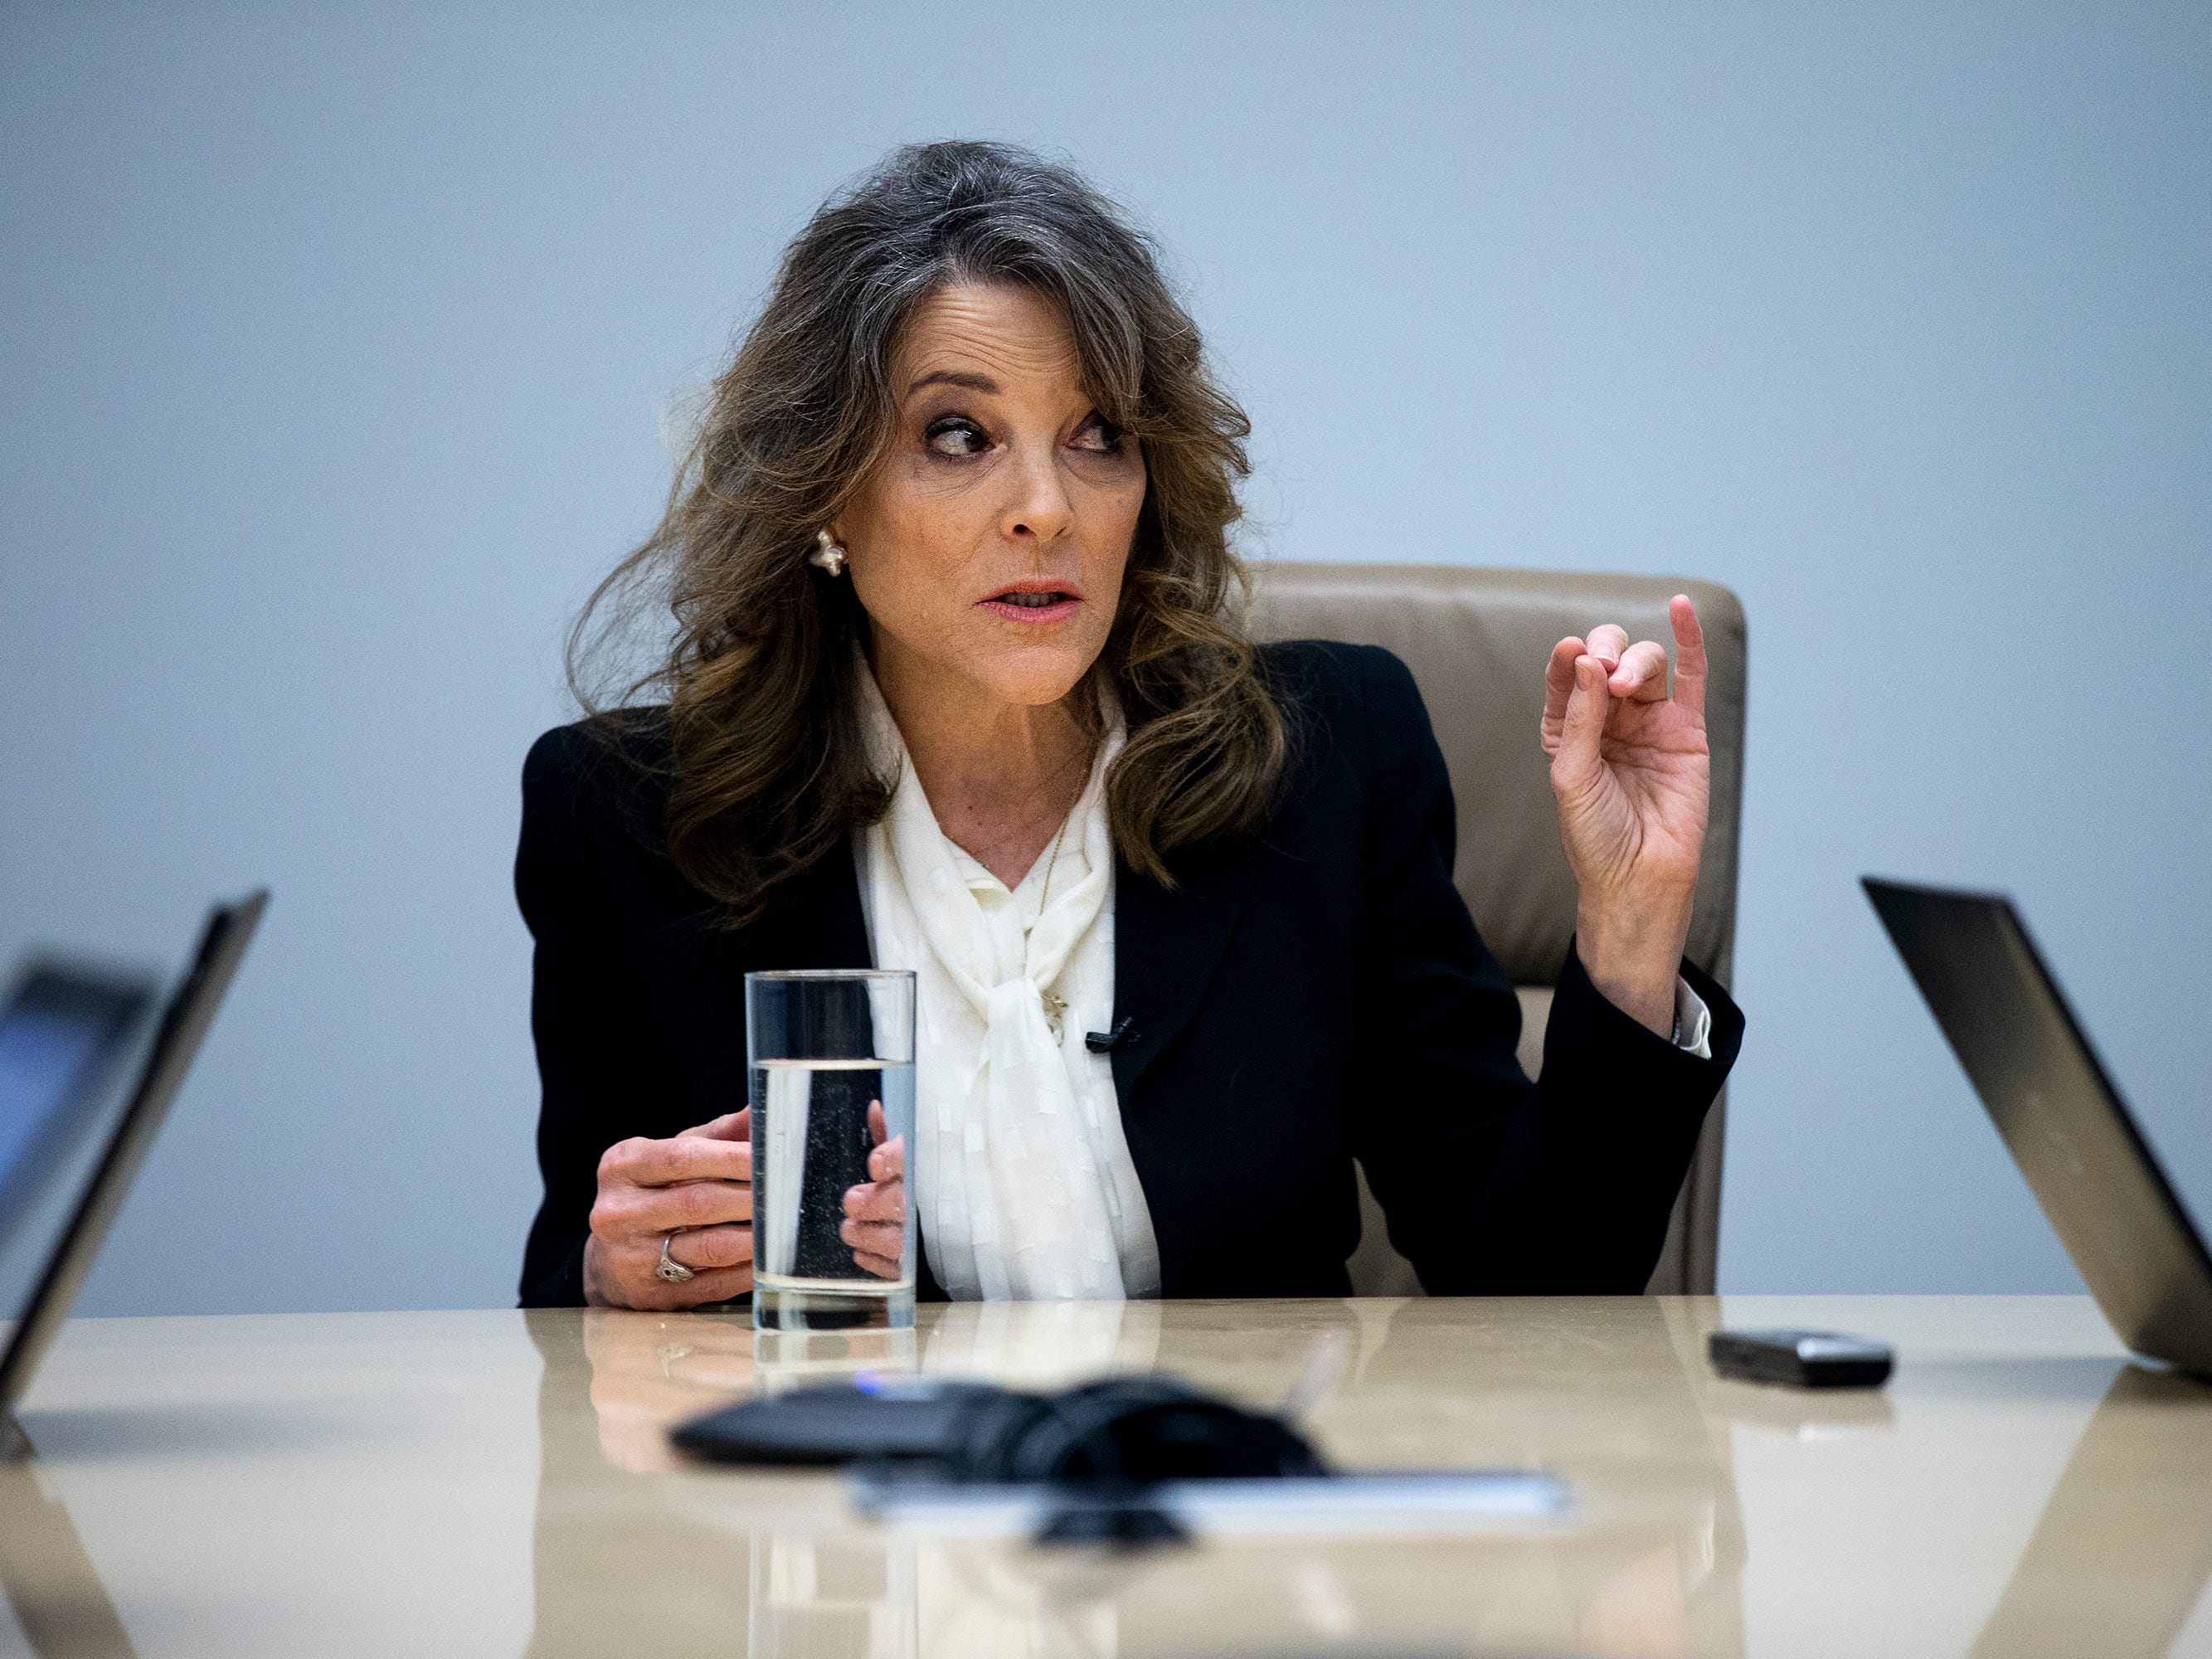 Presidential Candidate Marianne Williamson, a spiritual author and activist, meets with the Des Moines Register editorial board on Thursday, Jan. 31, 2019, in Des Moines